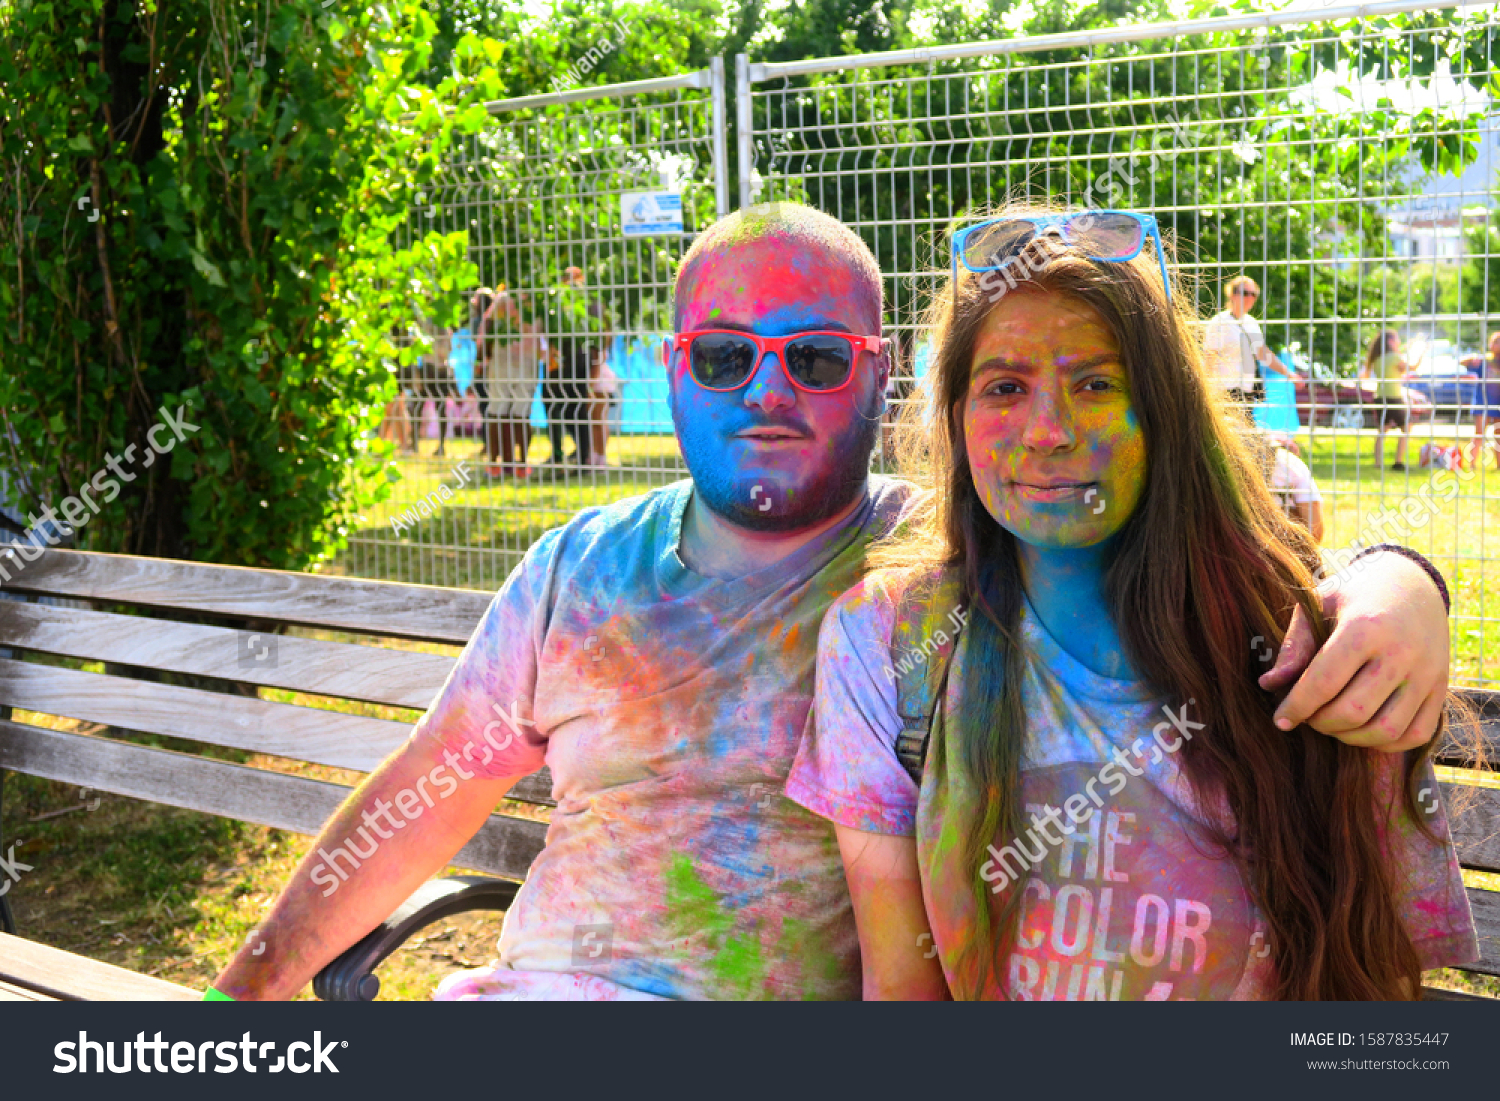 Montreal, Canada - August 2019: A young couple highly colored by colored powder at Montreal's Holi festival